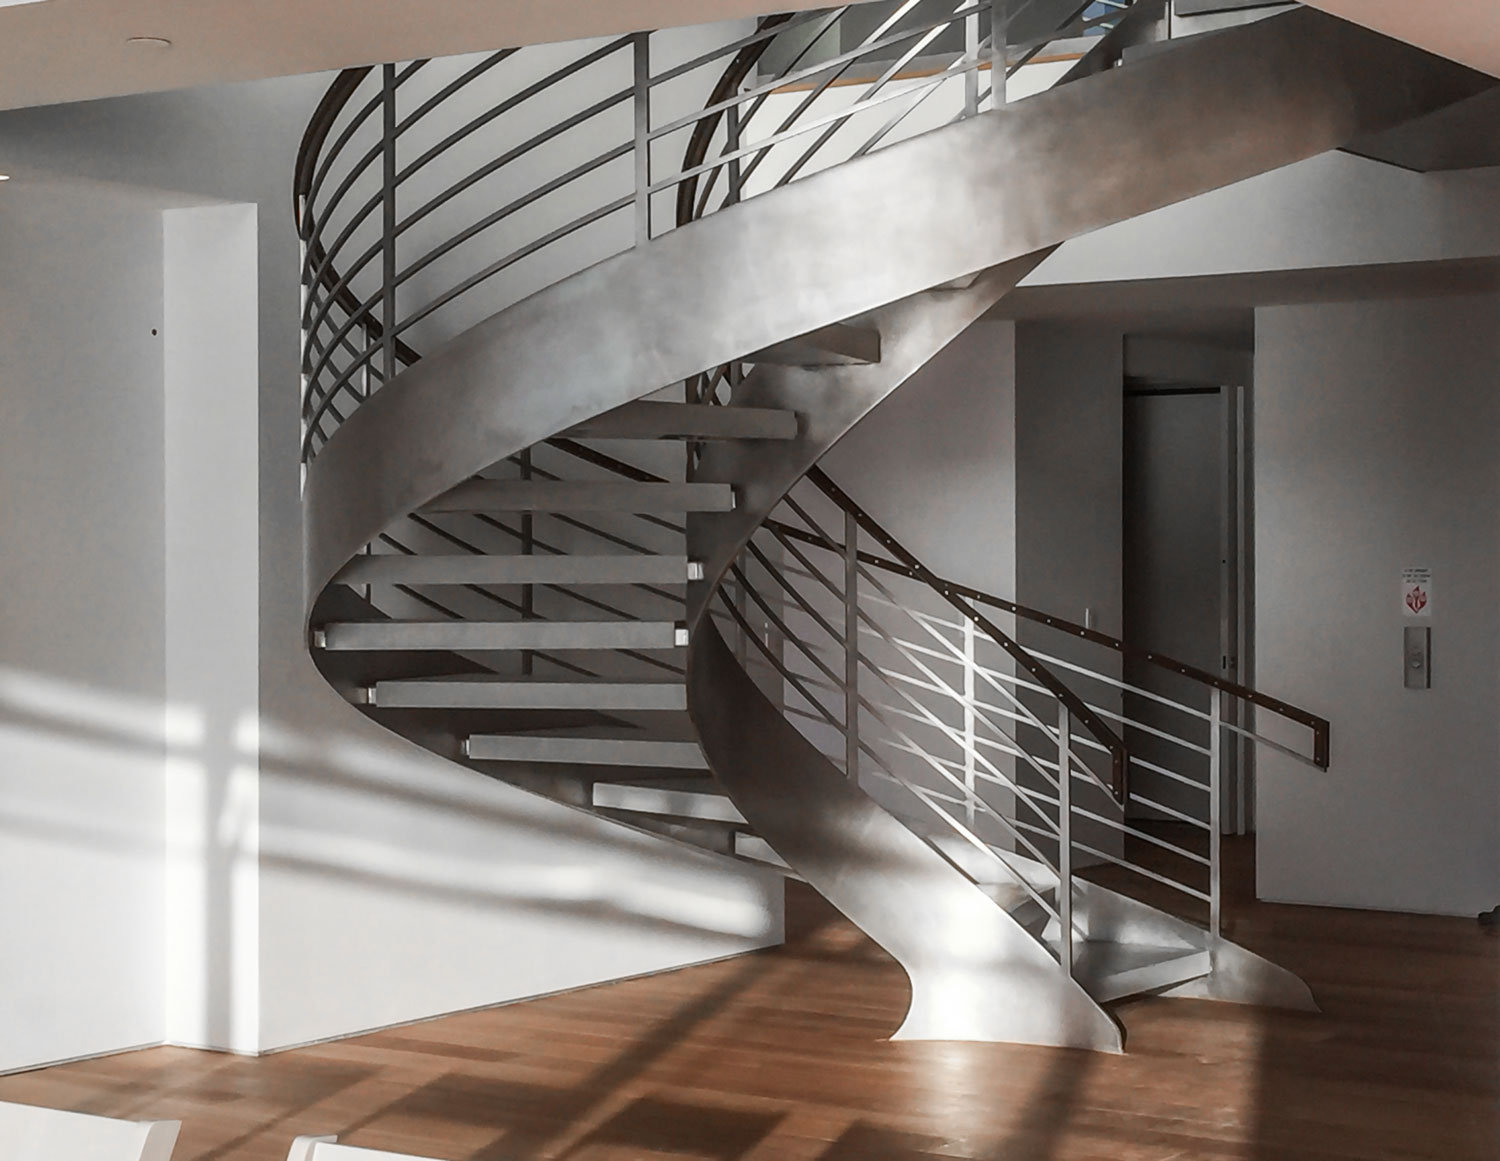 Helix with Steambent IPE wood Handrail